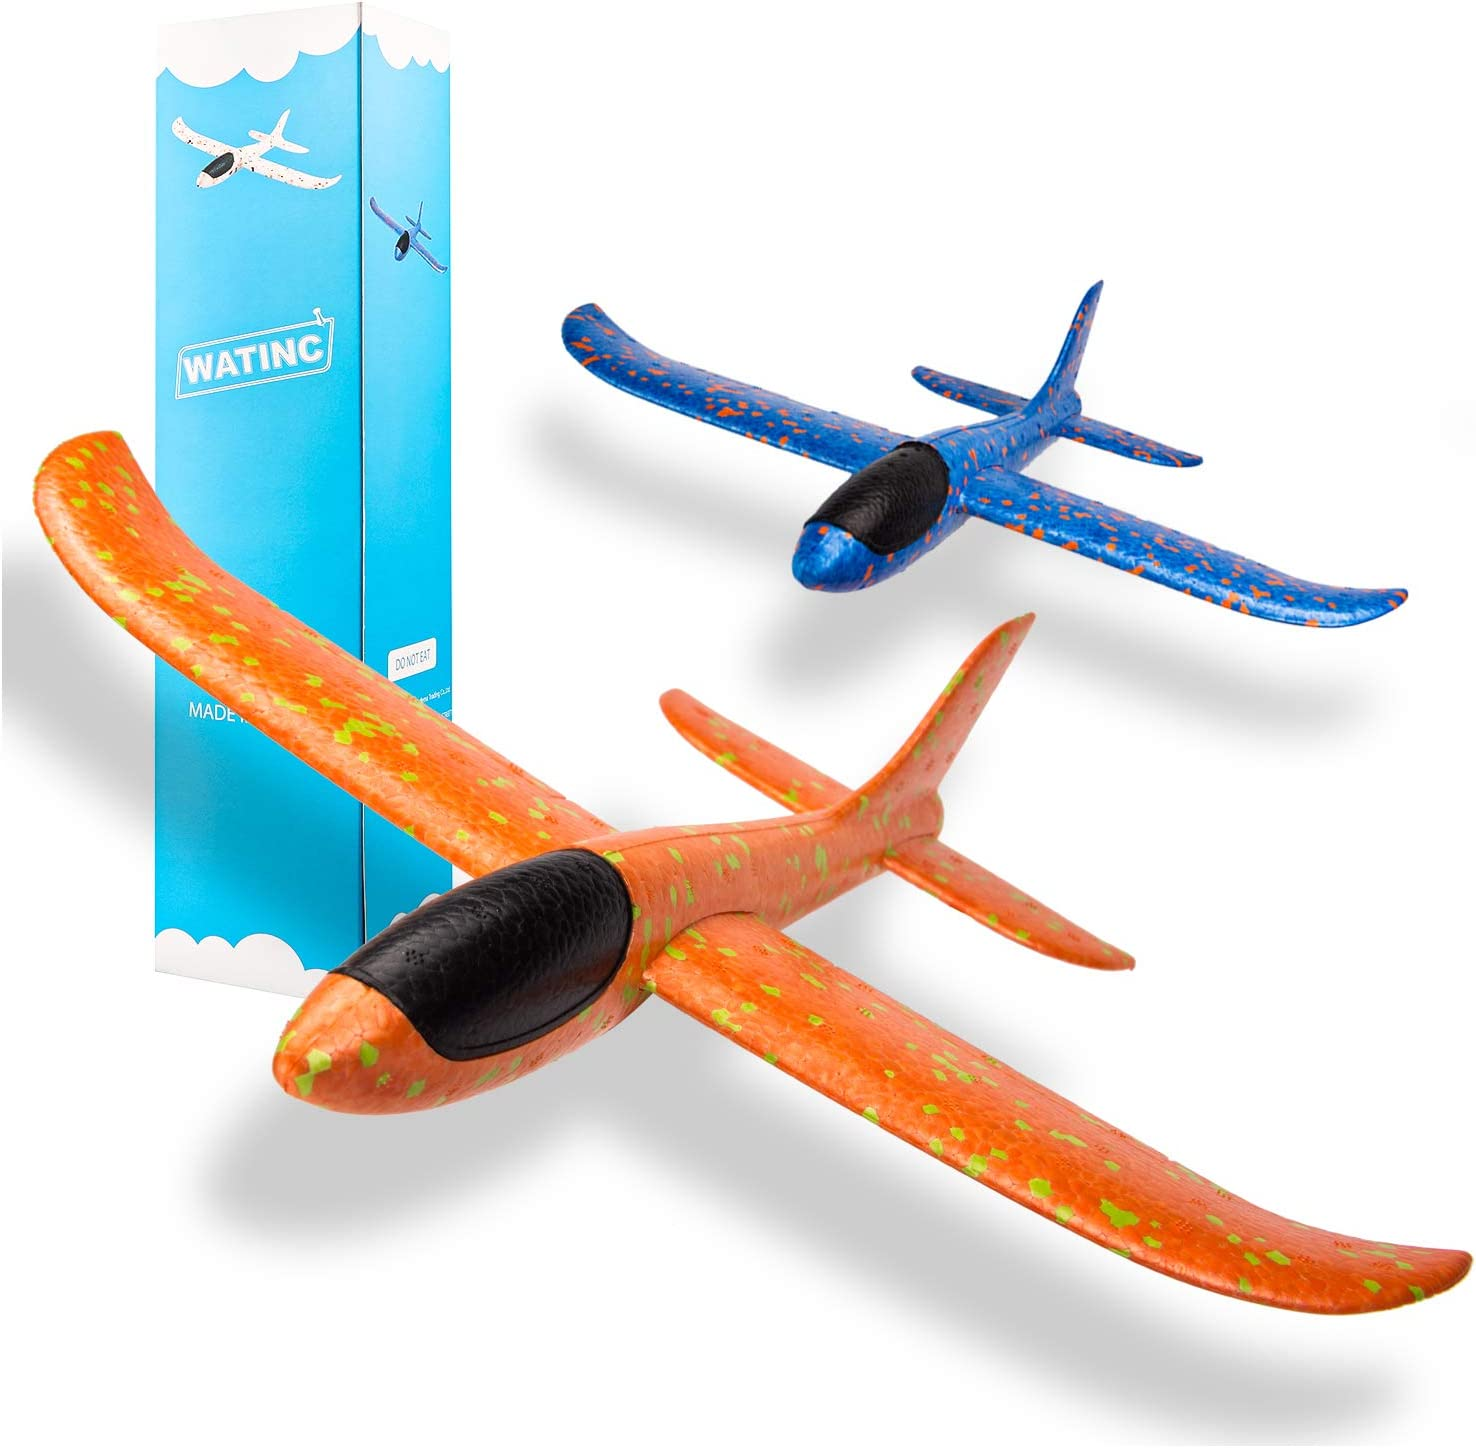 WATINC 2pcs 13.5inch Airplane, Manual Throwing, Fun, challenging, Outdoor Sports Toy, Model Foam Airplane, Blue & Orange Airplane (WT-Airplane 2Pcs)